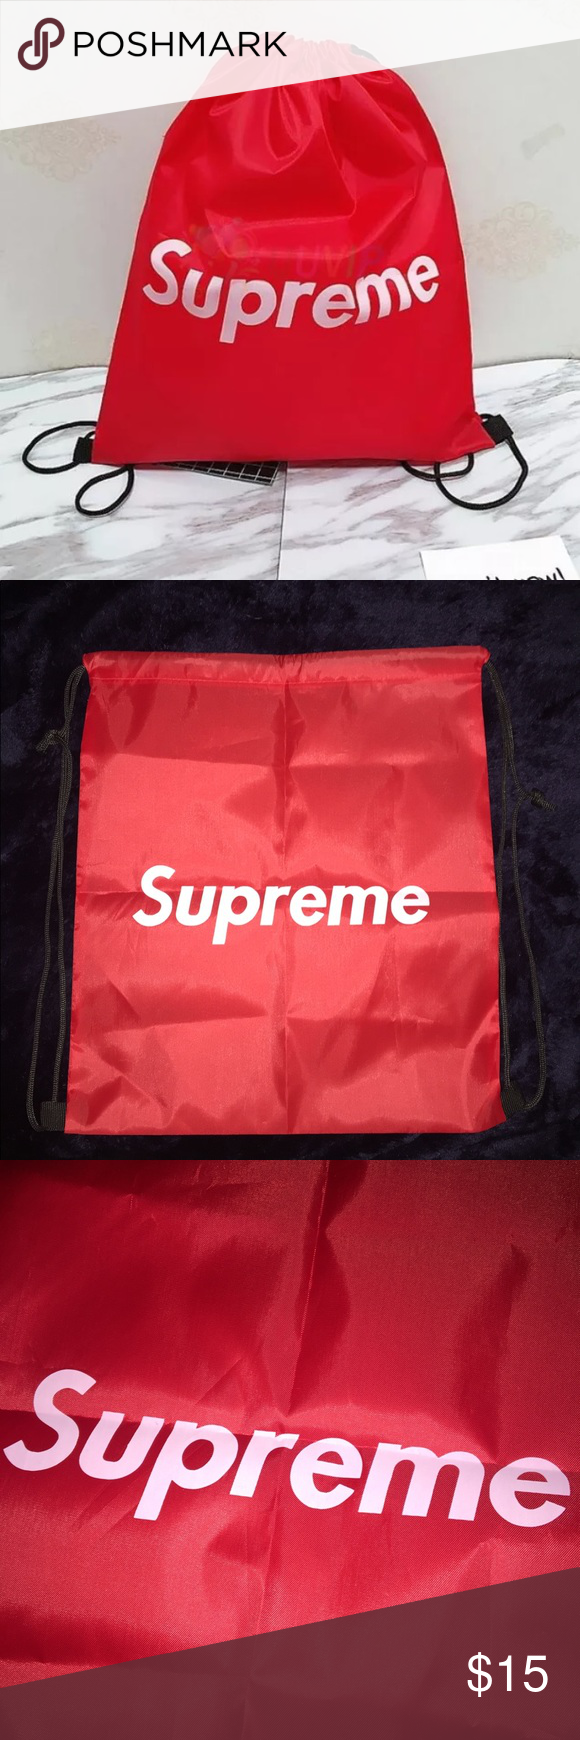 cf559fc5f60a87 Supreme Red Drawstring Bag You will be sent a Supreme Red Drawstring Bag!  Check my love notes for happy customers :) Nice size & good quality.